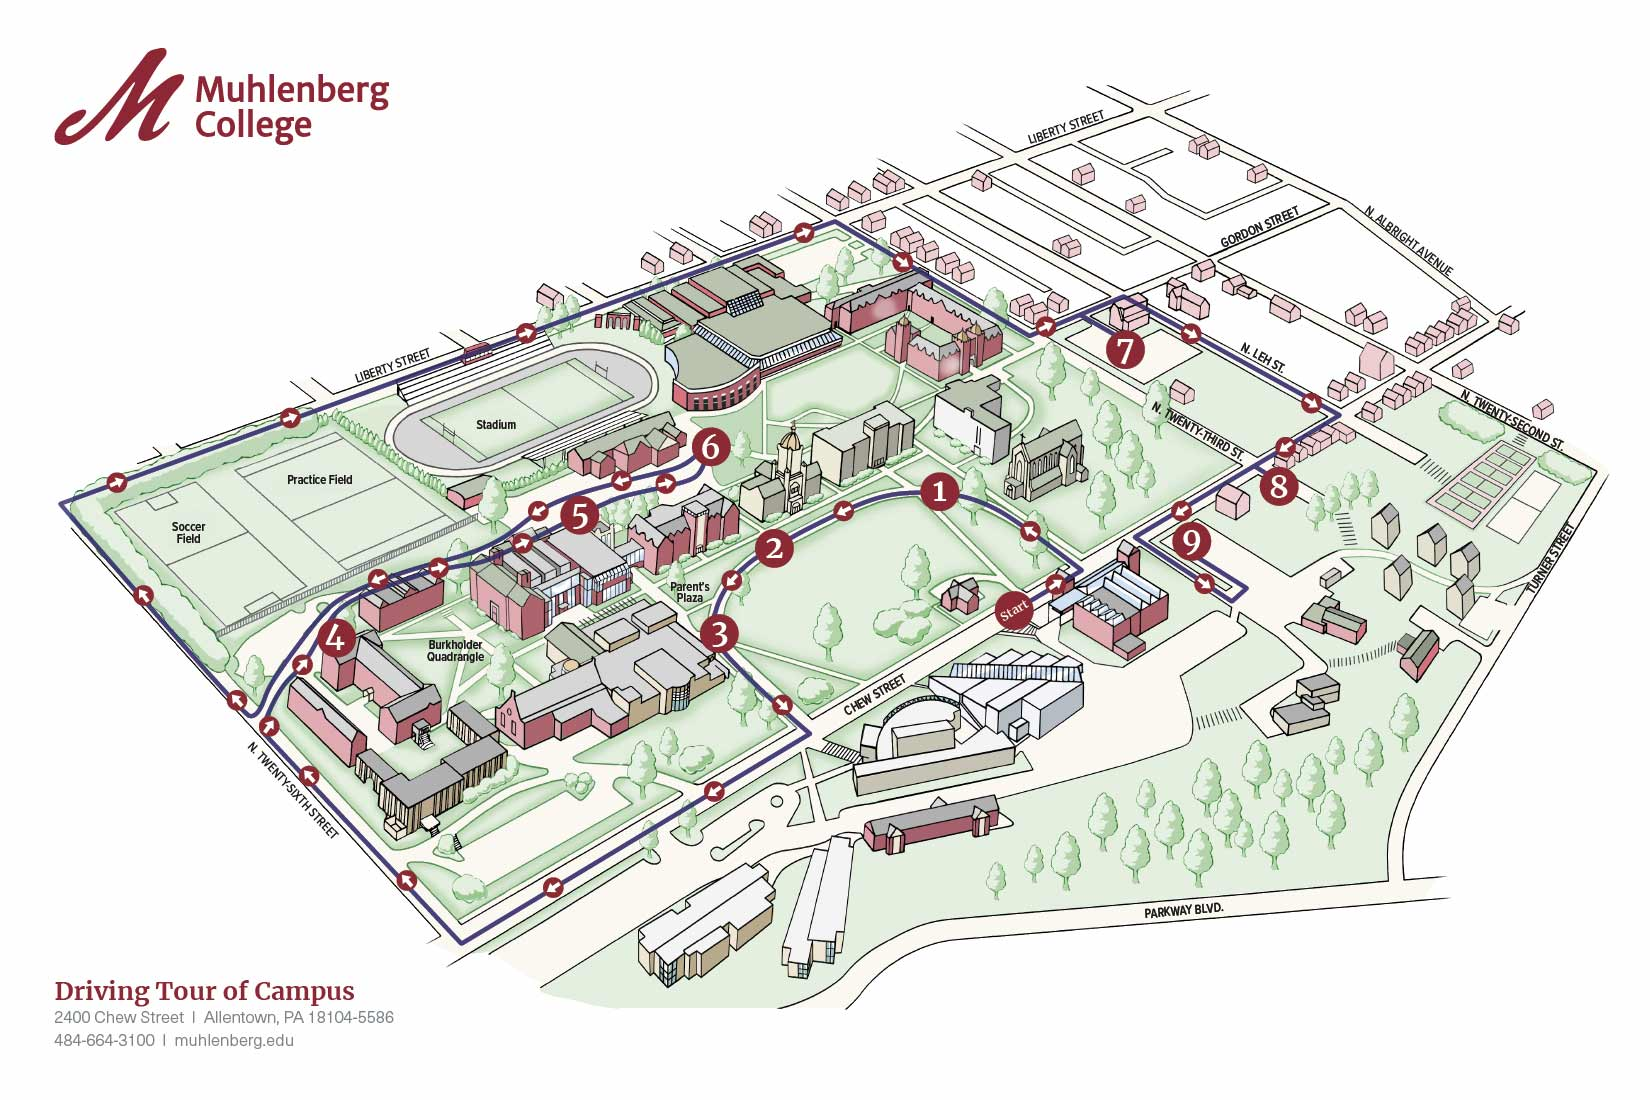 Muhlenberg campus map with driving tour information